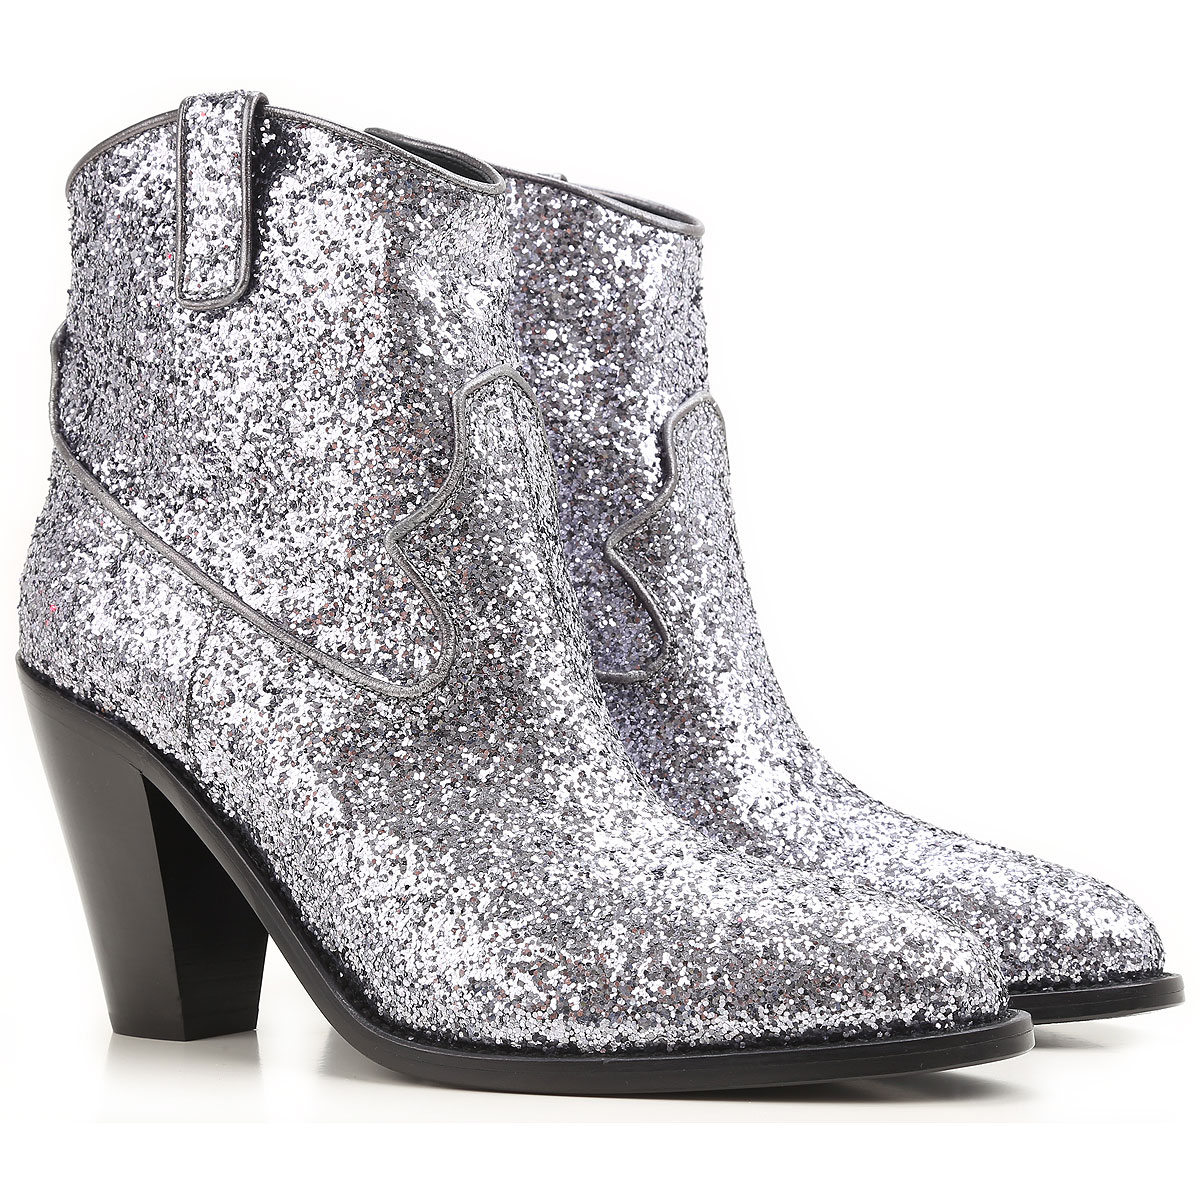 Yves Saint Laurent Boots For Women, Booties On Sale In Outlet, Titanium, Leather, 2021, 3.5 6